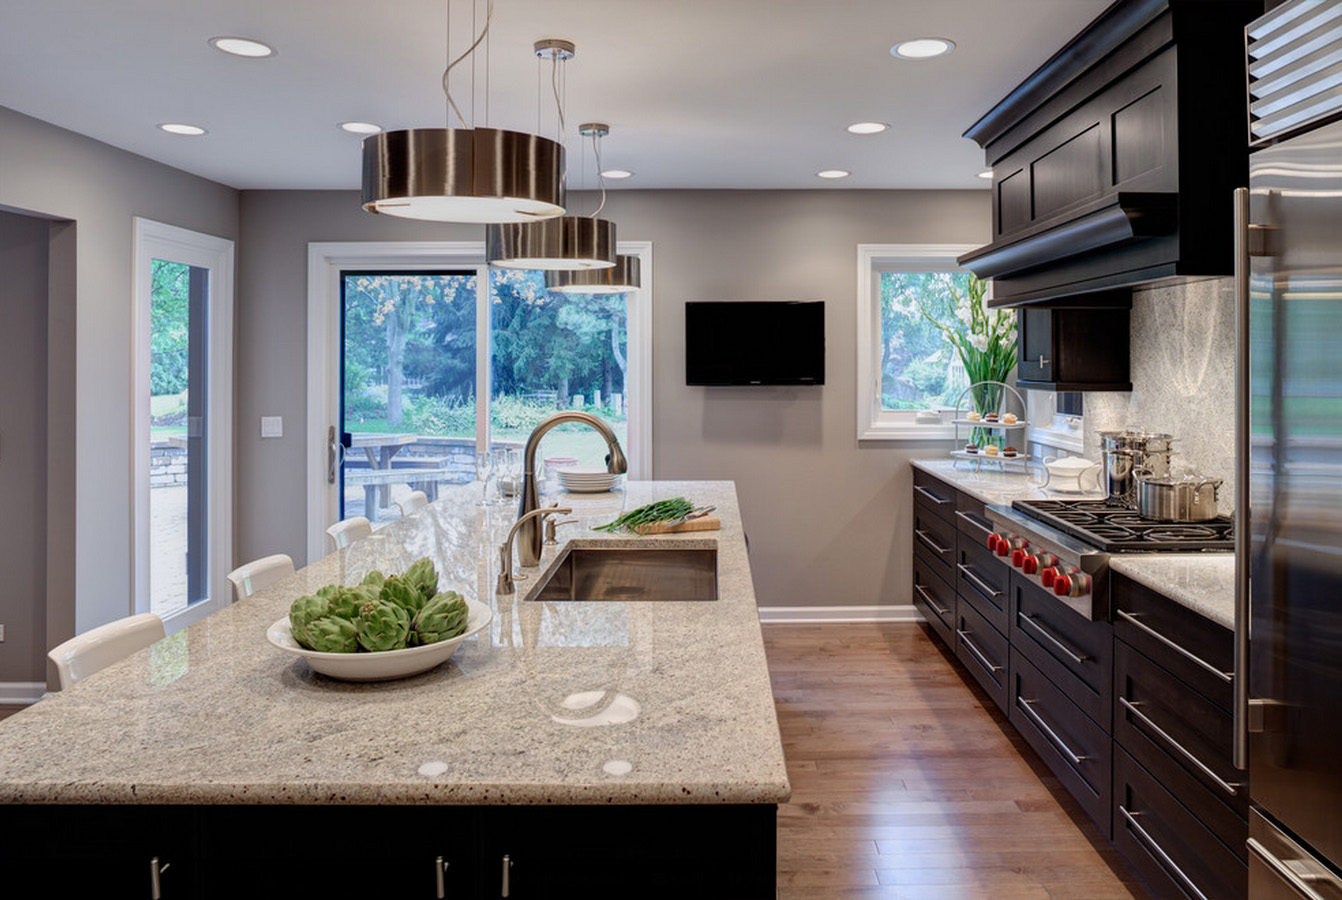 Top 15 Stunning Kitchen Design Ideas Plus their Costs